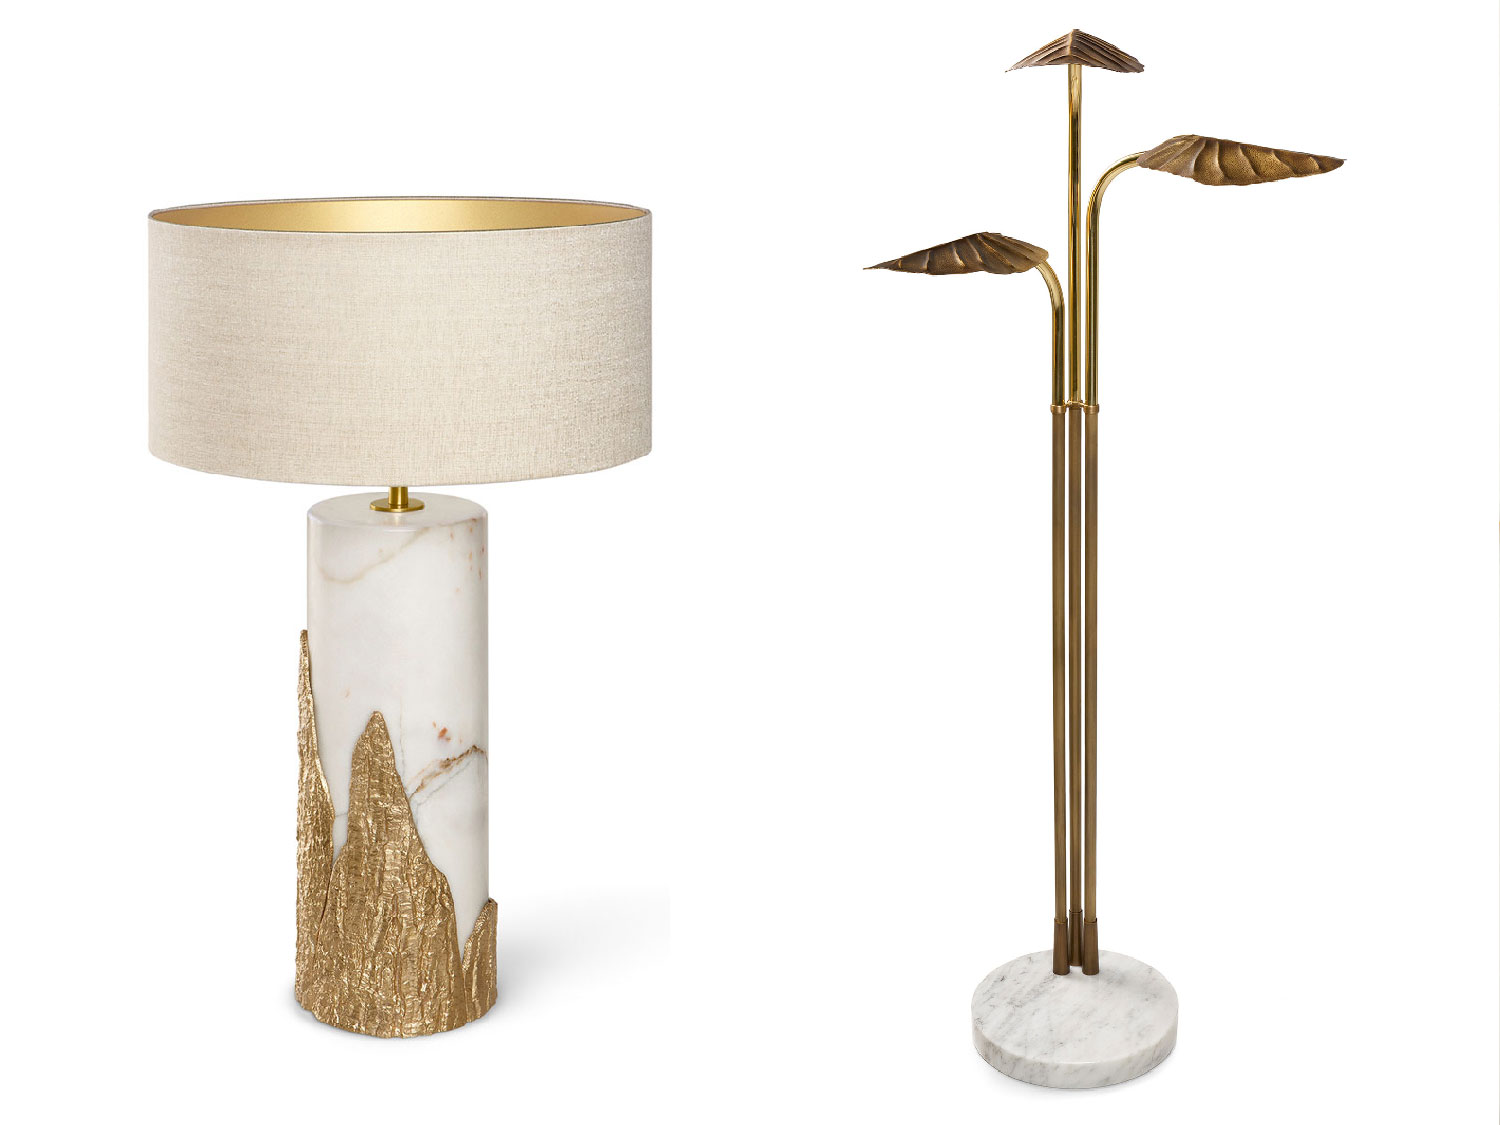 To Earth Collection by Ginger & Jagger at Maison & Objet 2015 | Yellowtrace